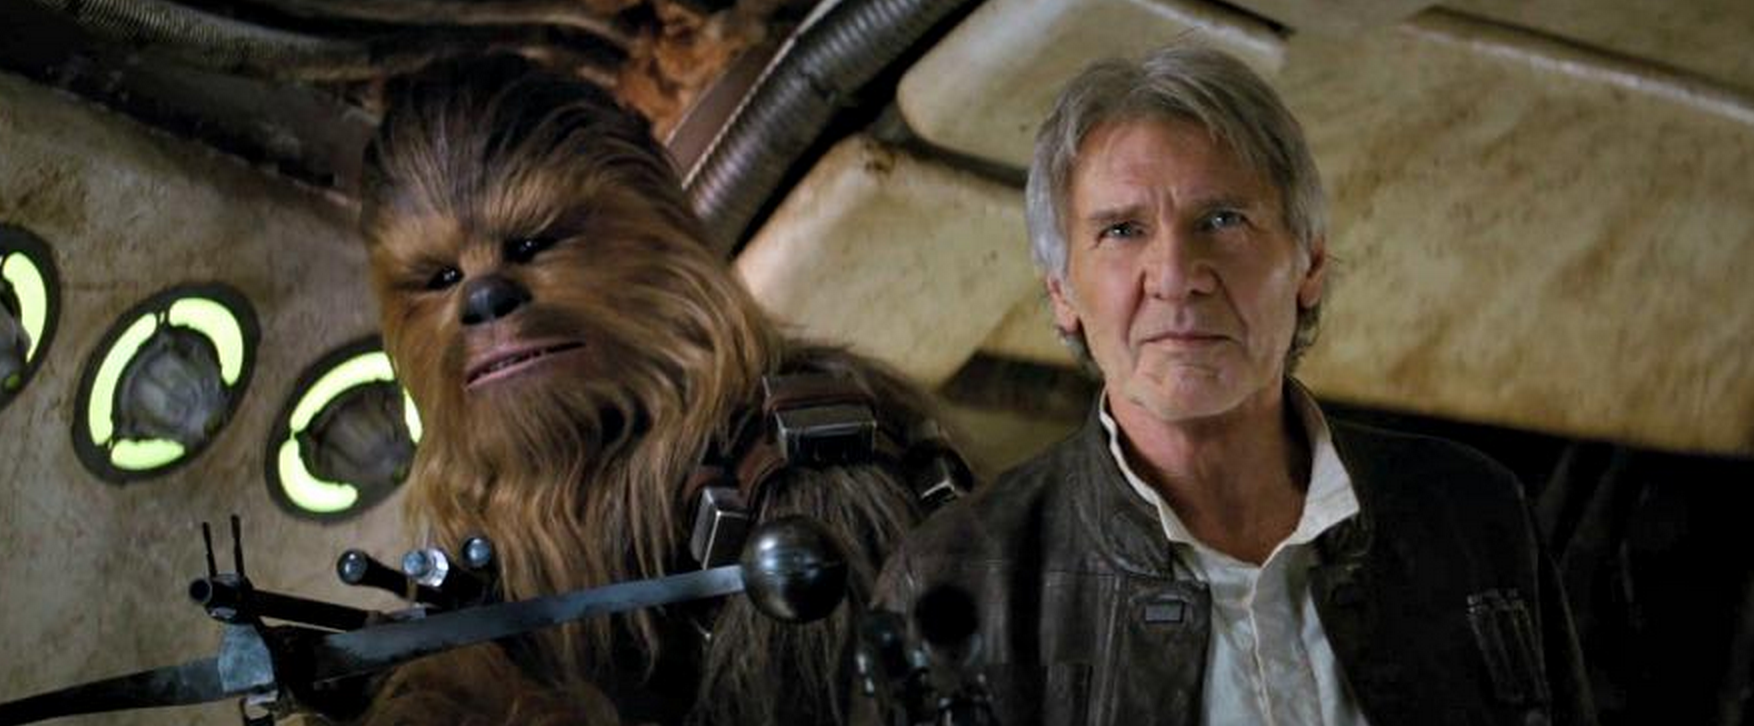 Chewy and Han Solo return in Star Wars: The Force Awakens. Courtesy of Disney/Lucasfilm.